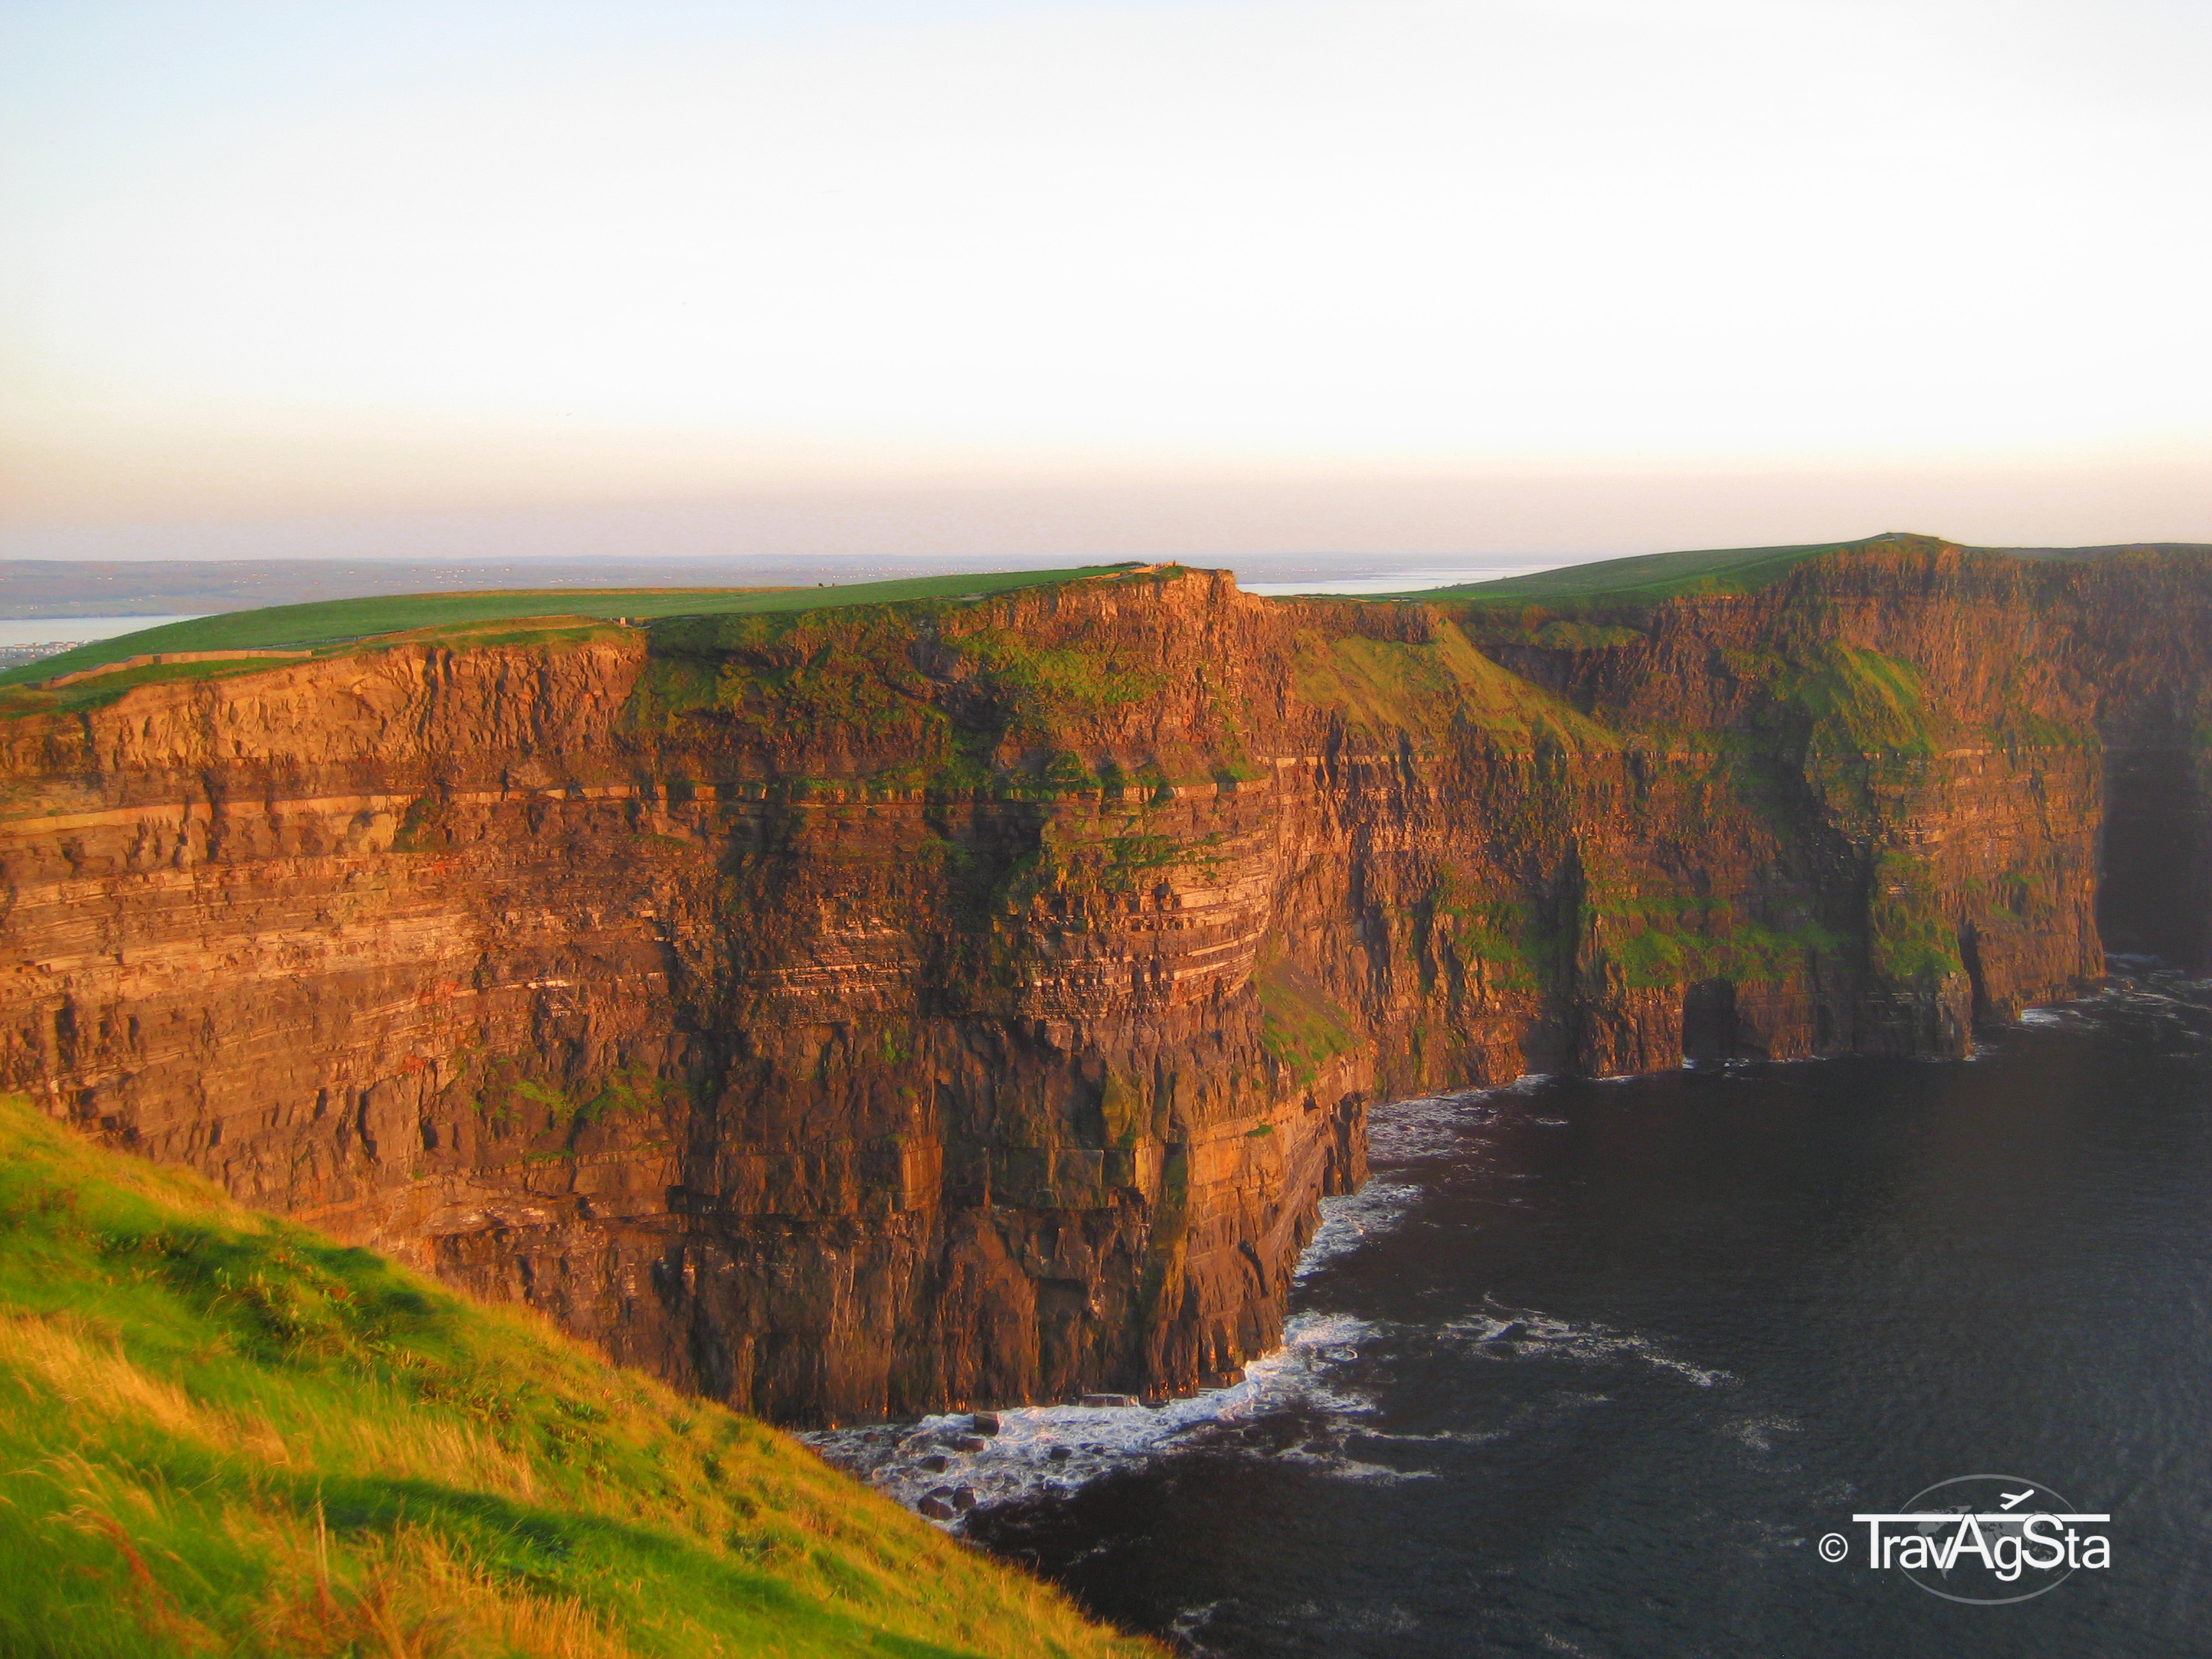 The Wild West – Ireland at its best!